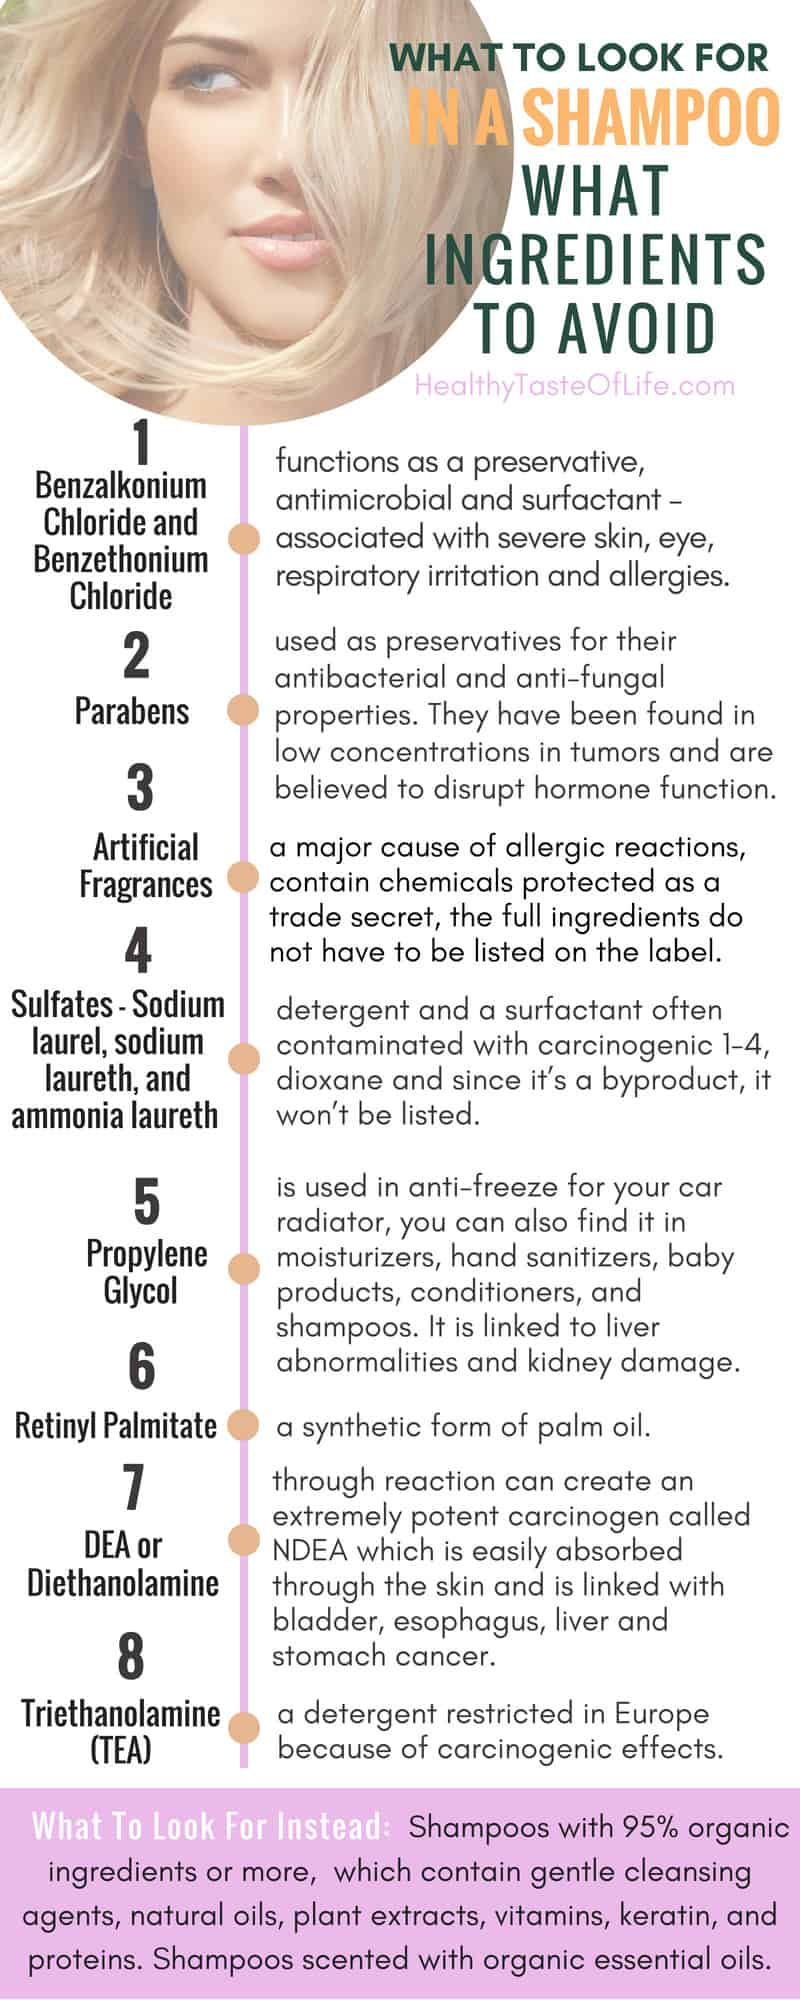 What Ingredients To Avoid in a shampoo